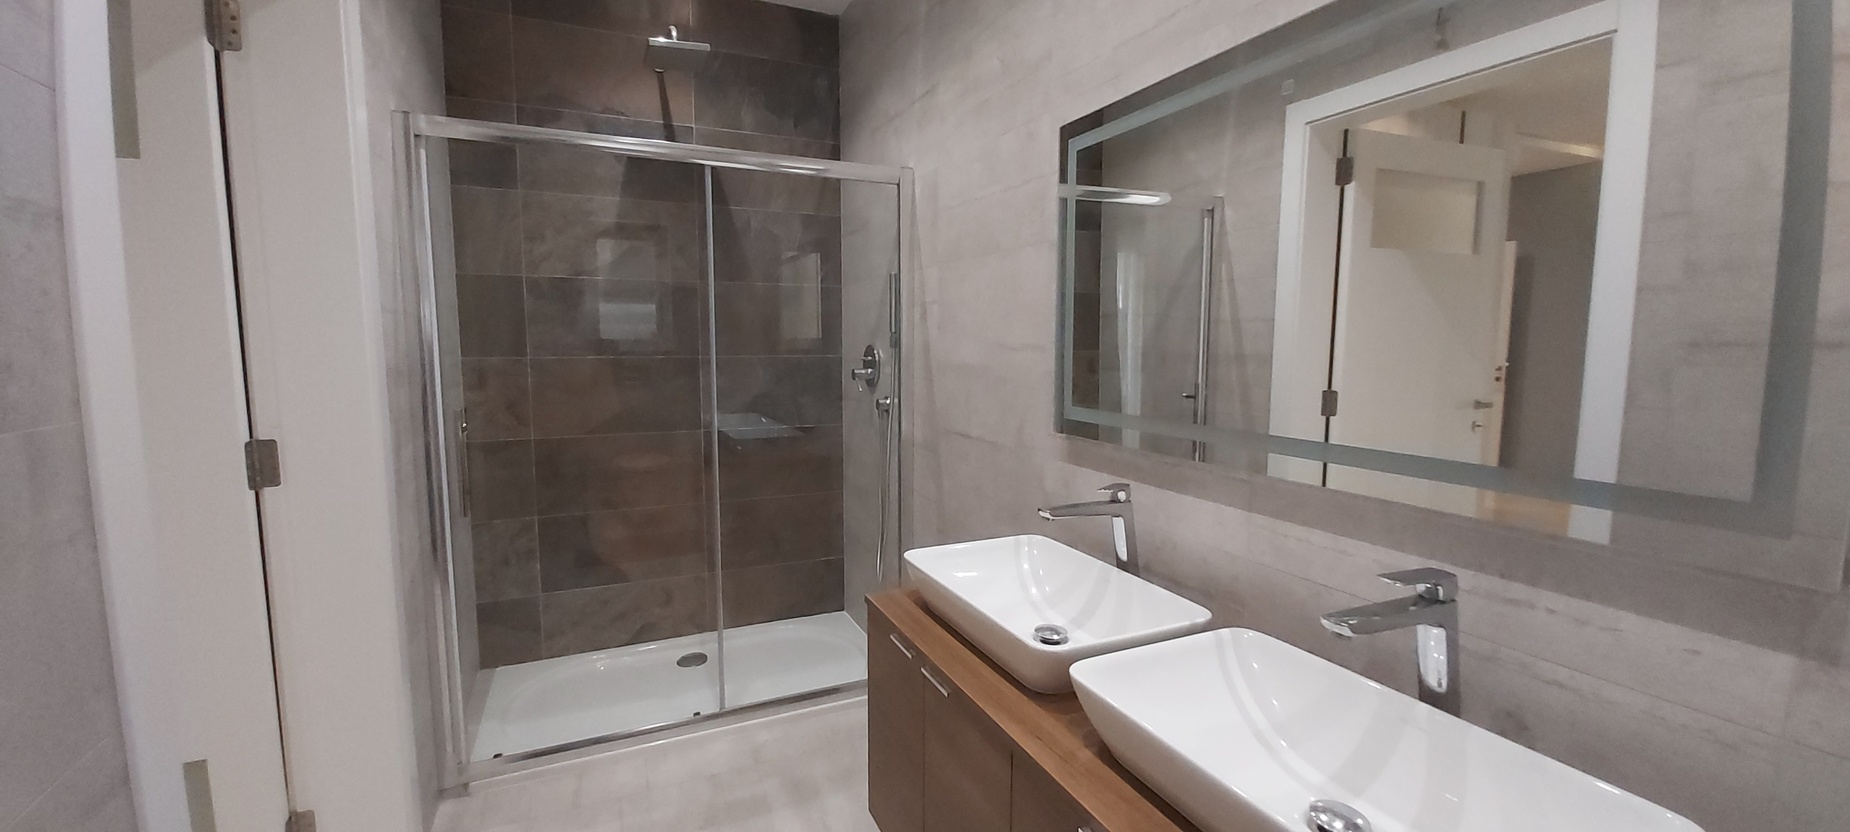 3 bed Apartment For Rent in Mellieha, Mellieha - thumb 11